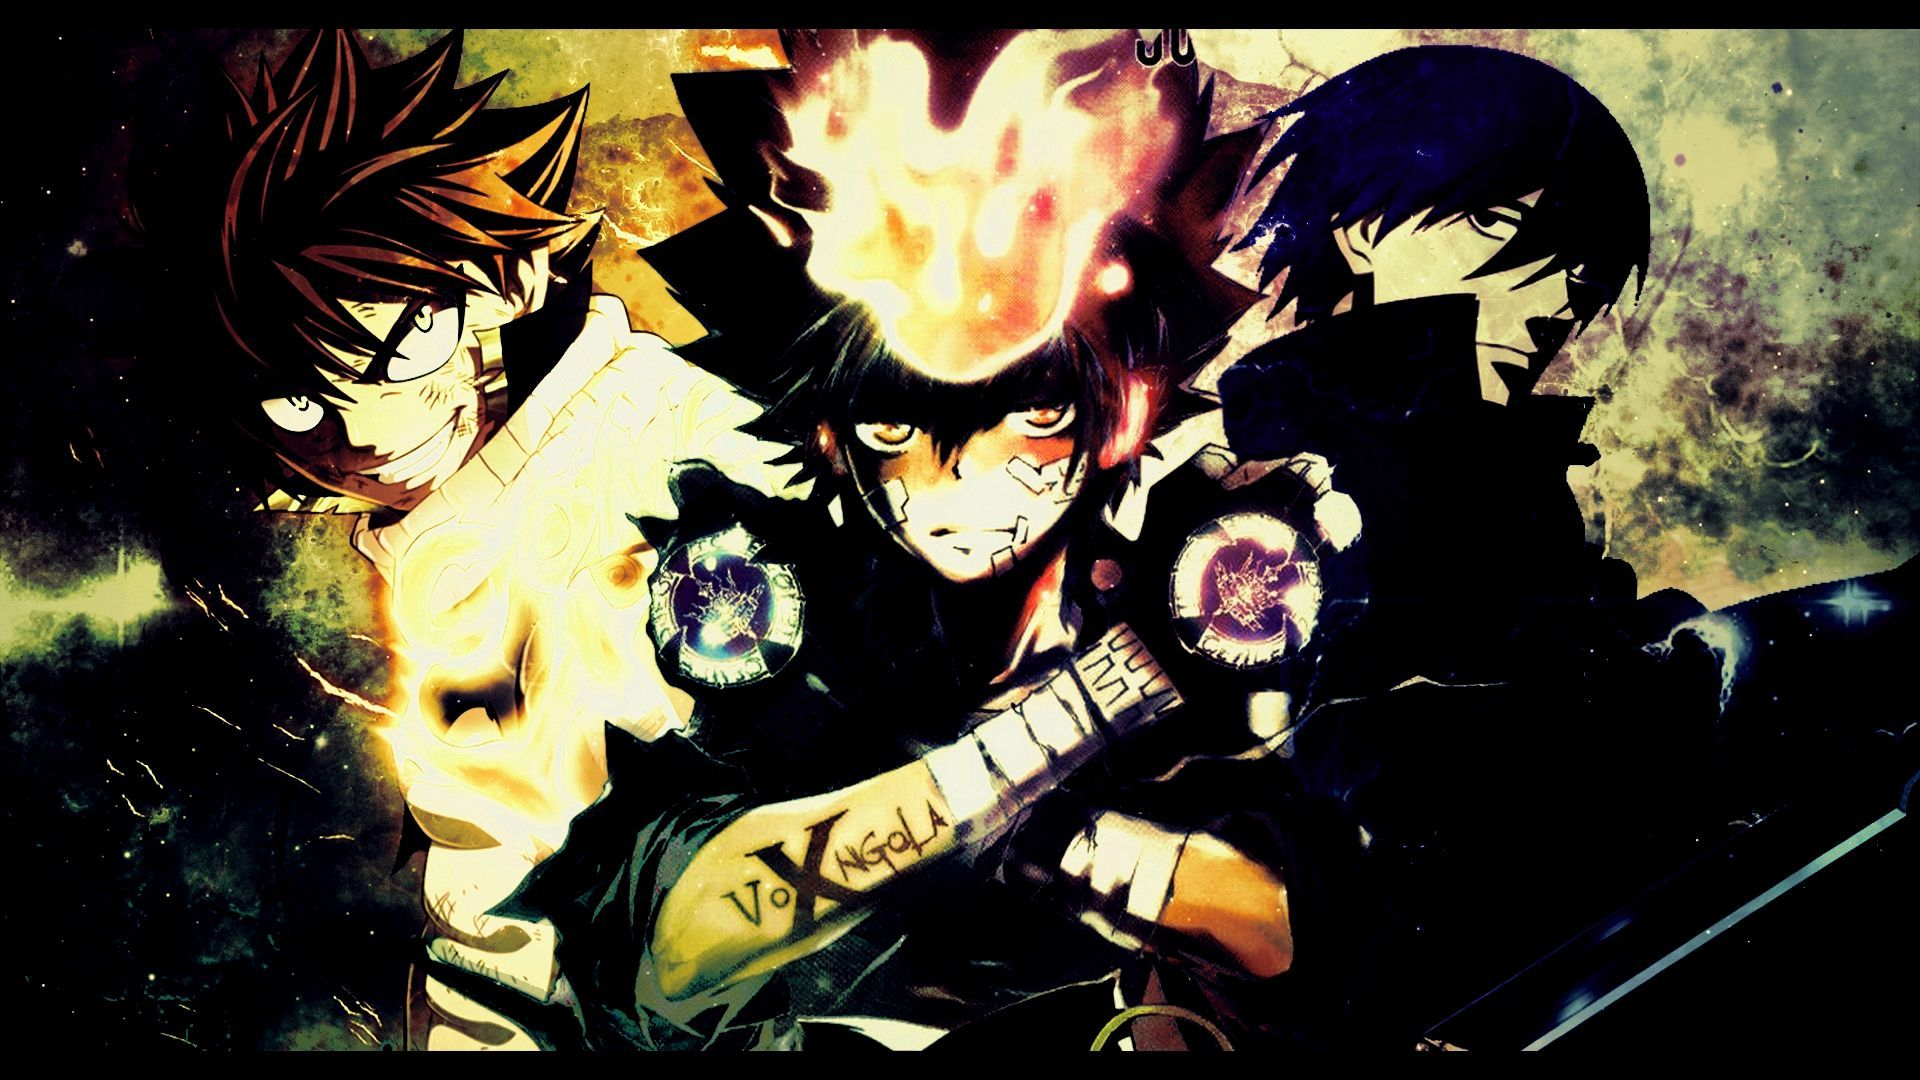 Hd Wallpapers Anime WallFree100 Free High Definition